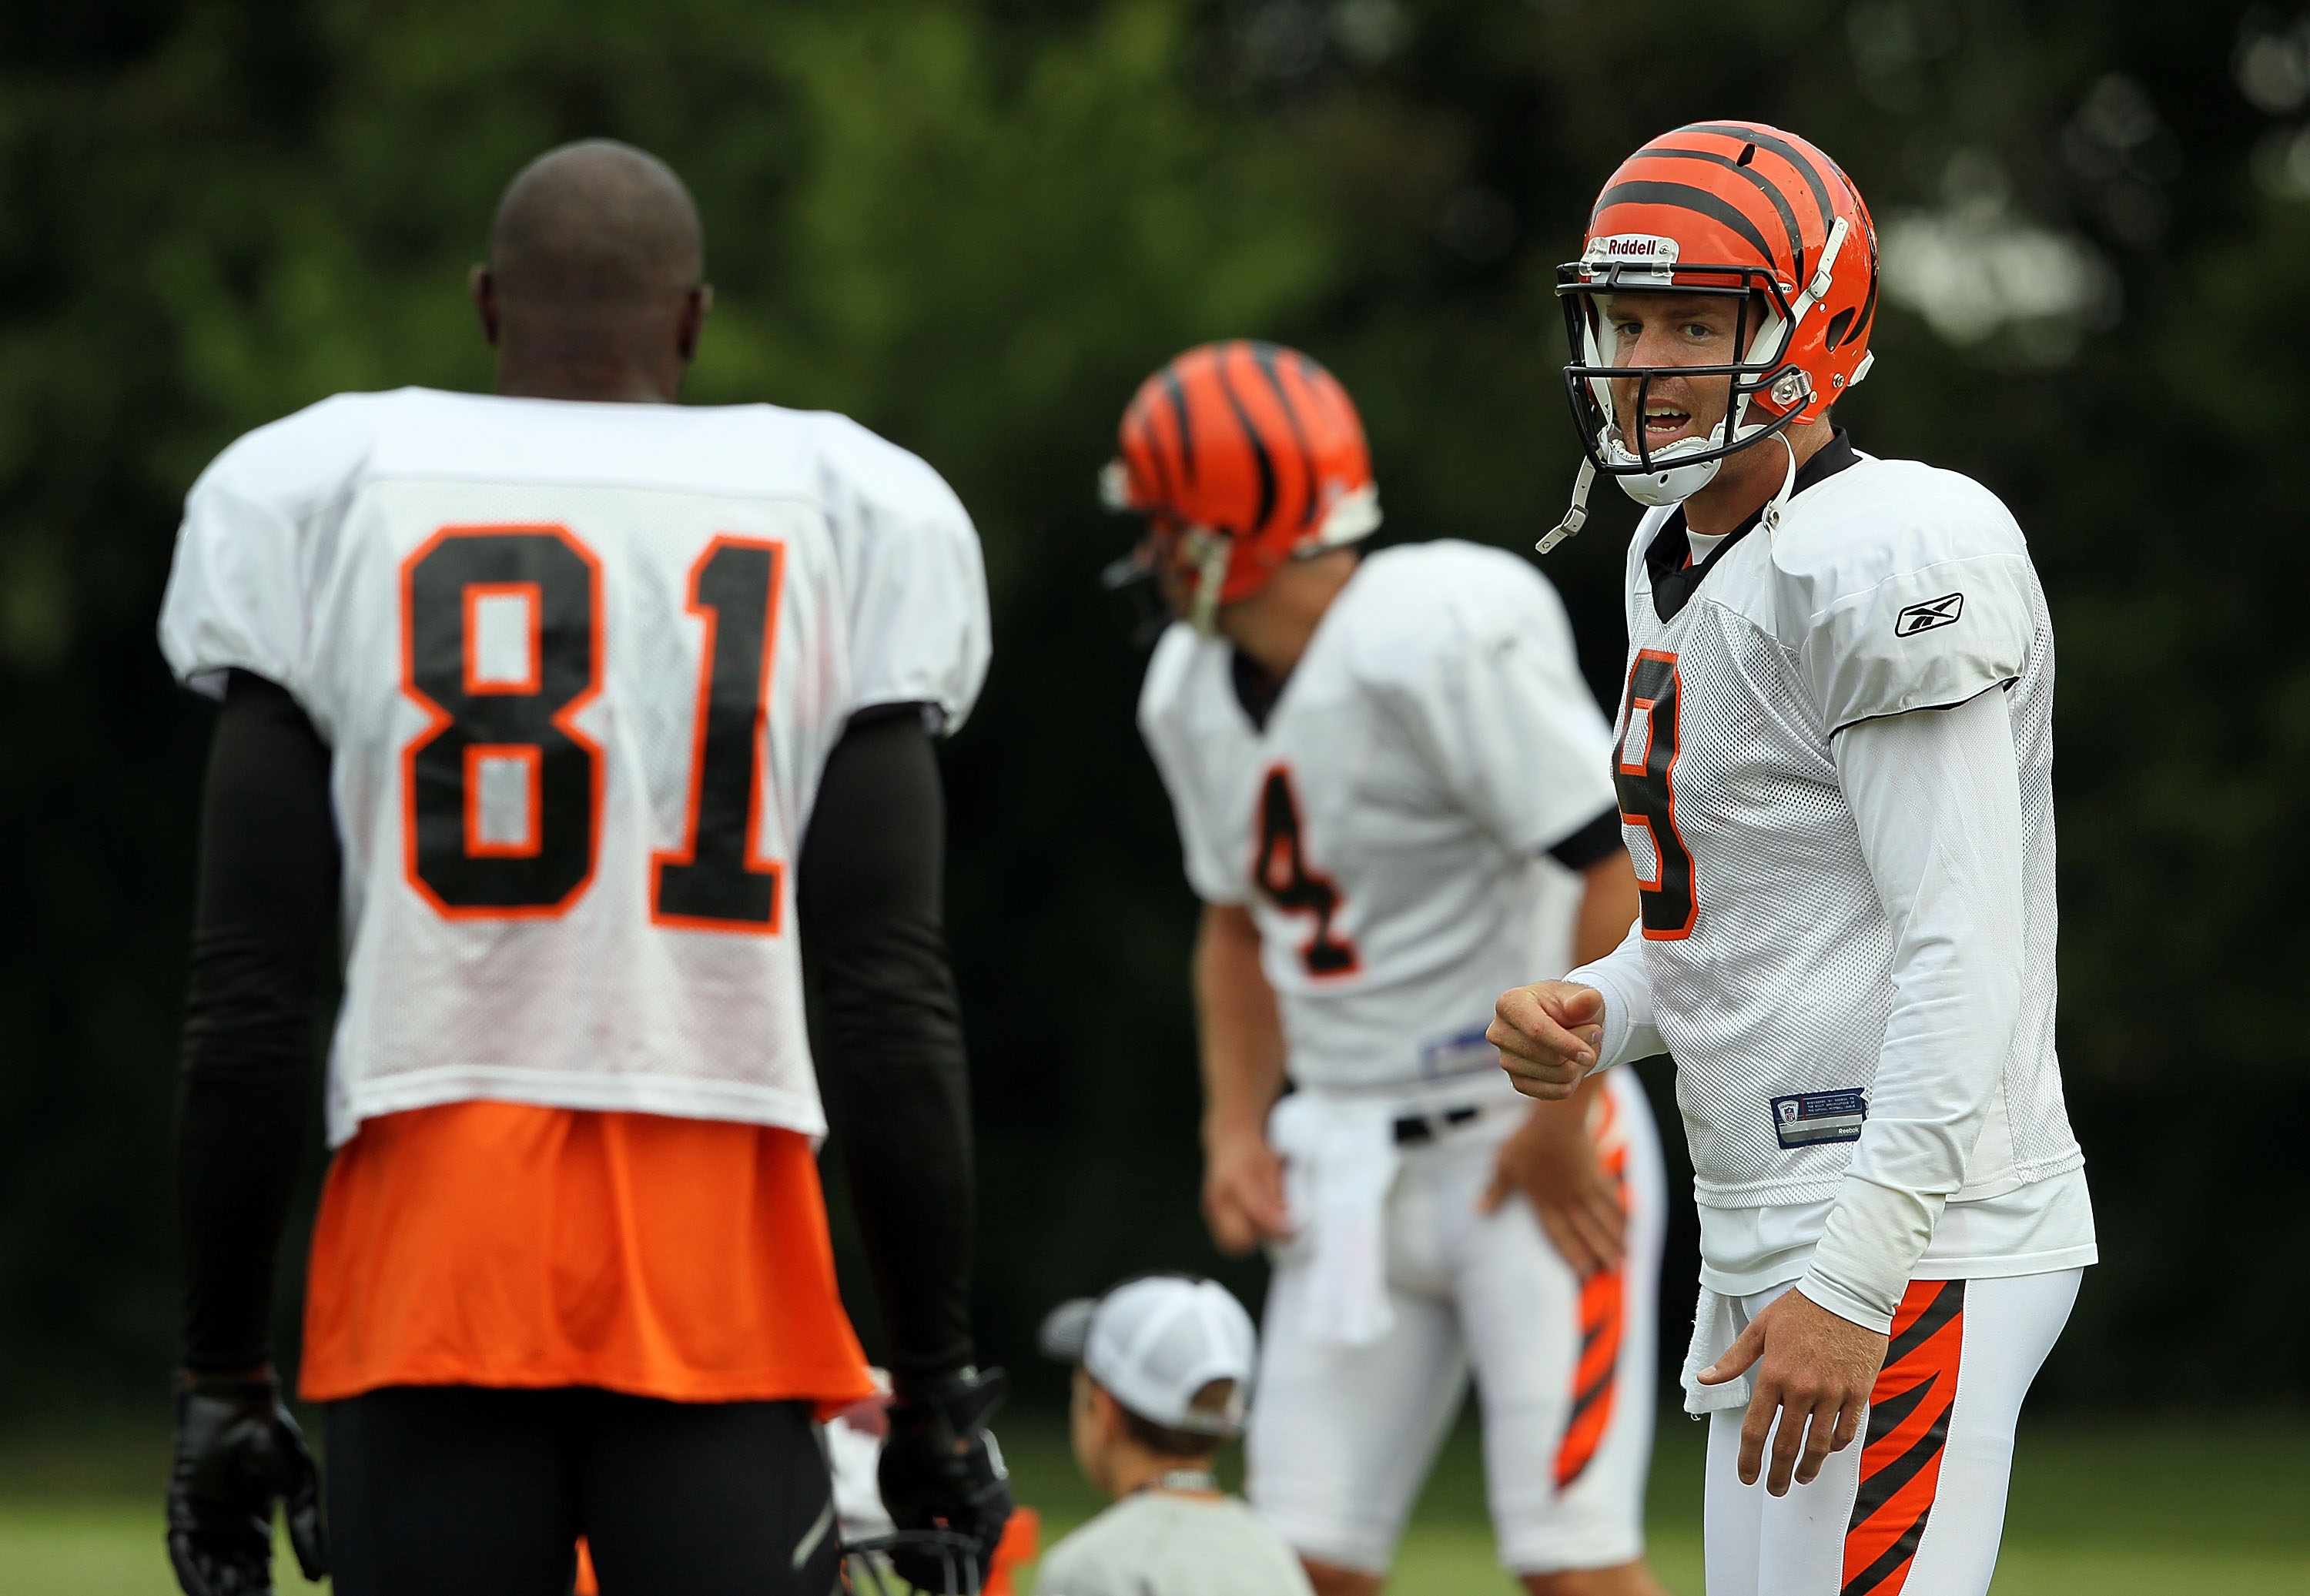 GEORGETOWN, KY - JULY 31:  Carson Palmer #9 (right) of the Cincinnati Bengals talks with Terrell Owens #81 during the Bengals training camp at Georgetown College on July 31, 2010 in Georgetown, Kentucky.  (Photo by Andy Lyons/Getty Images)